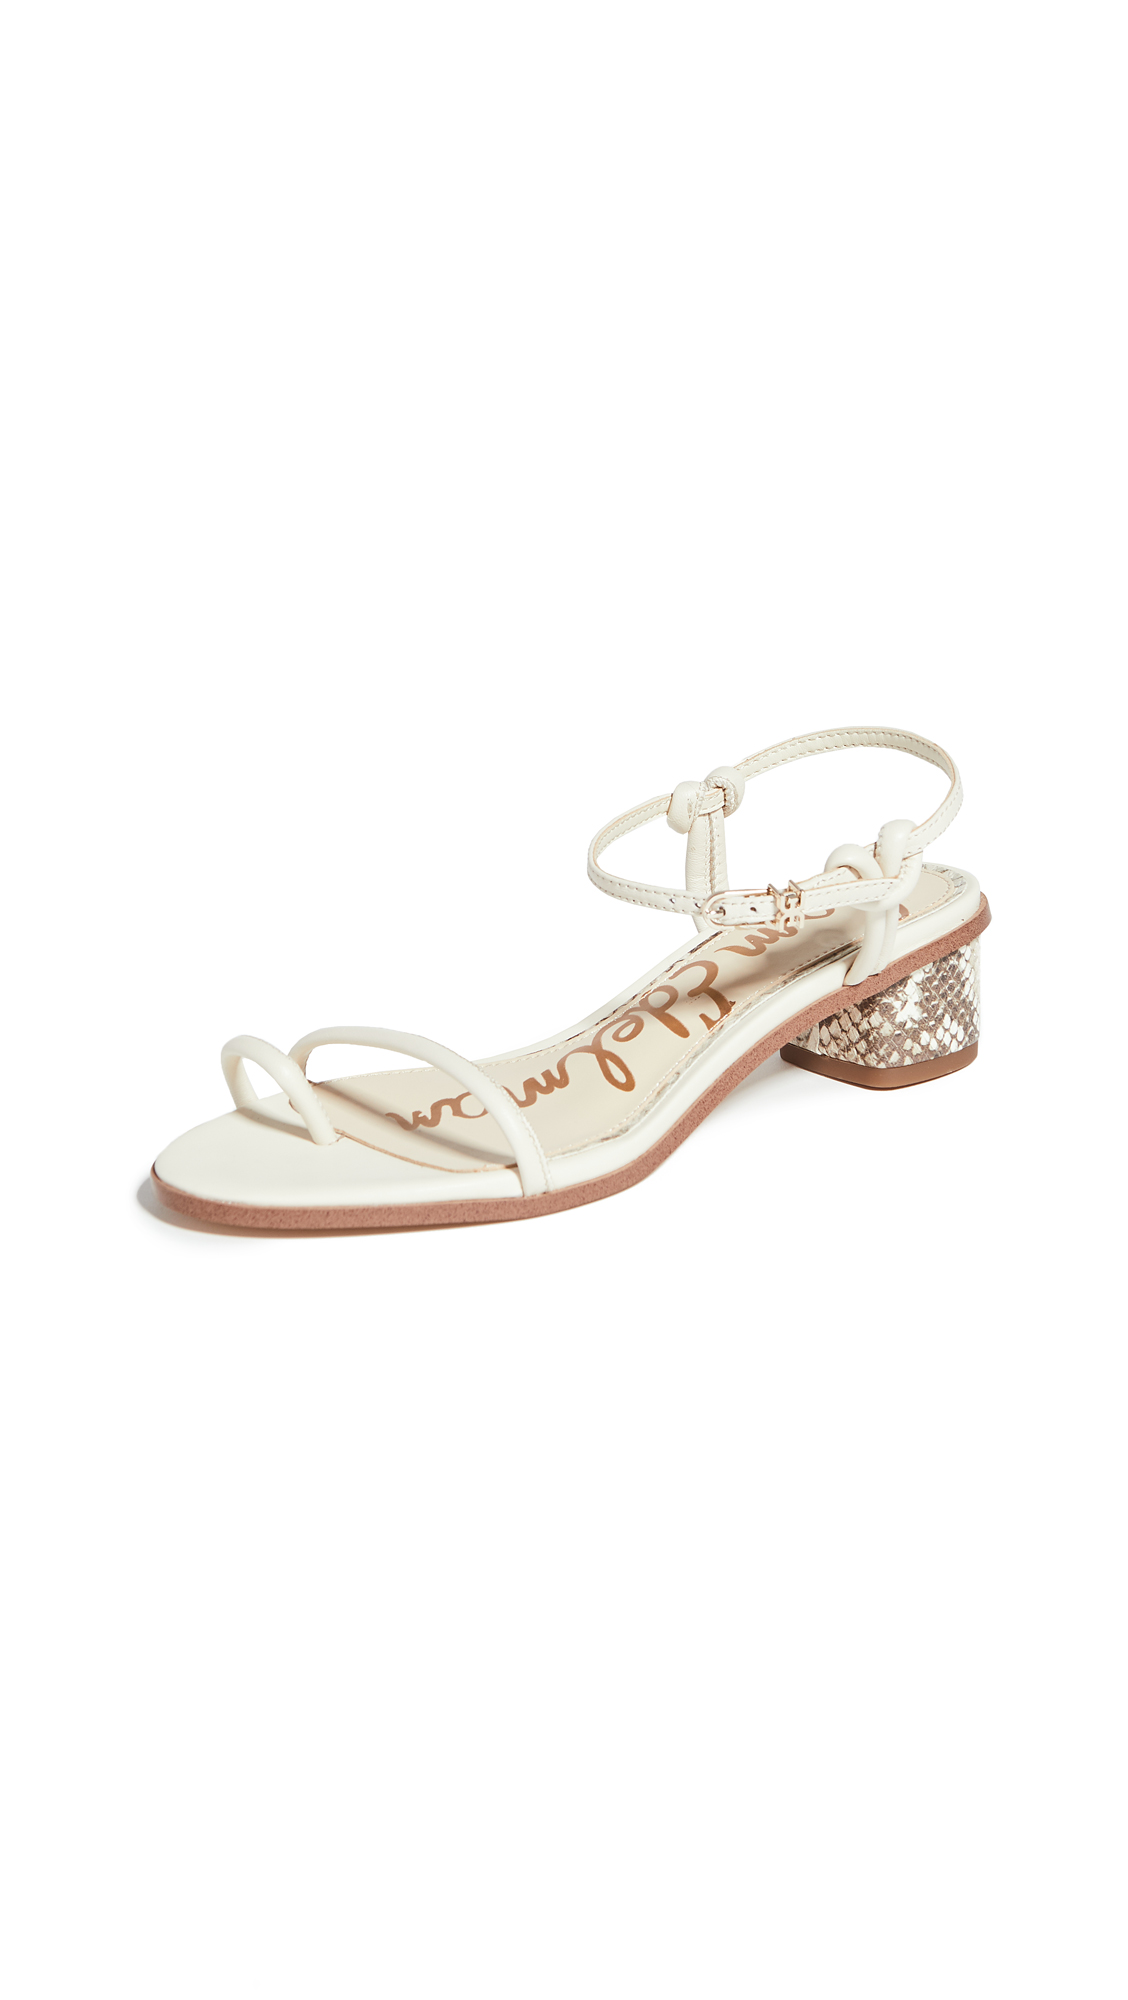 Sam Edelman Isle Sandals – 30% Off Sale